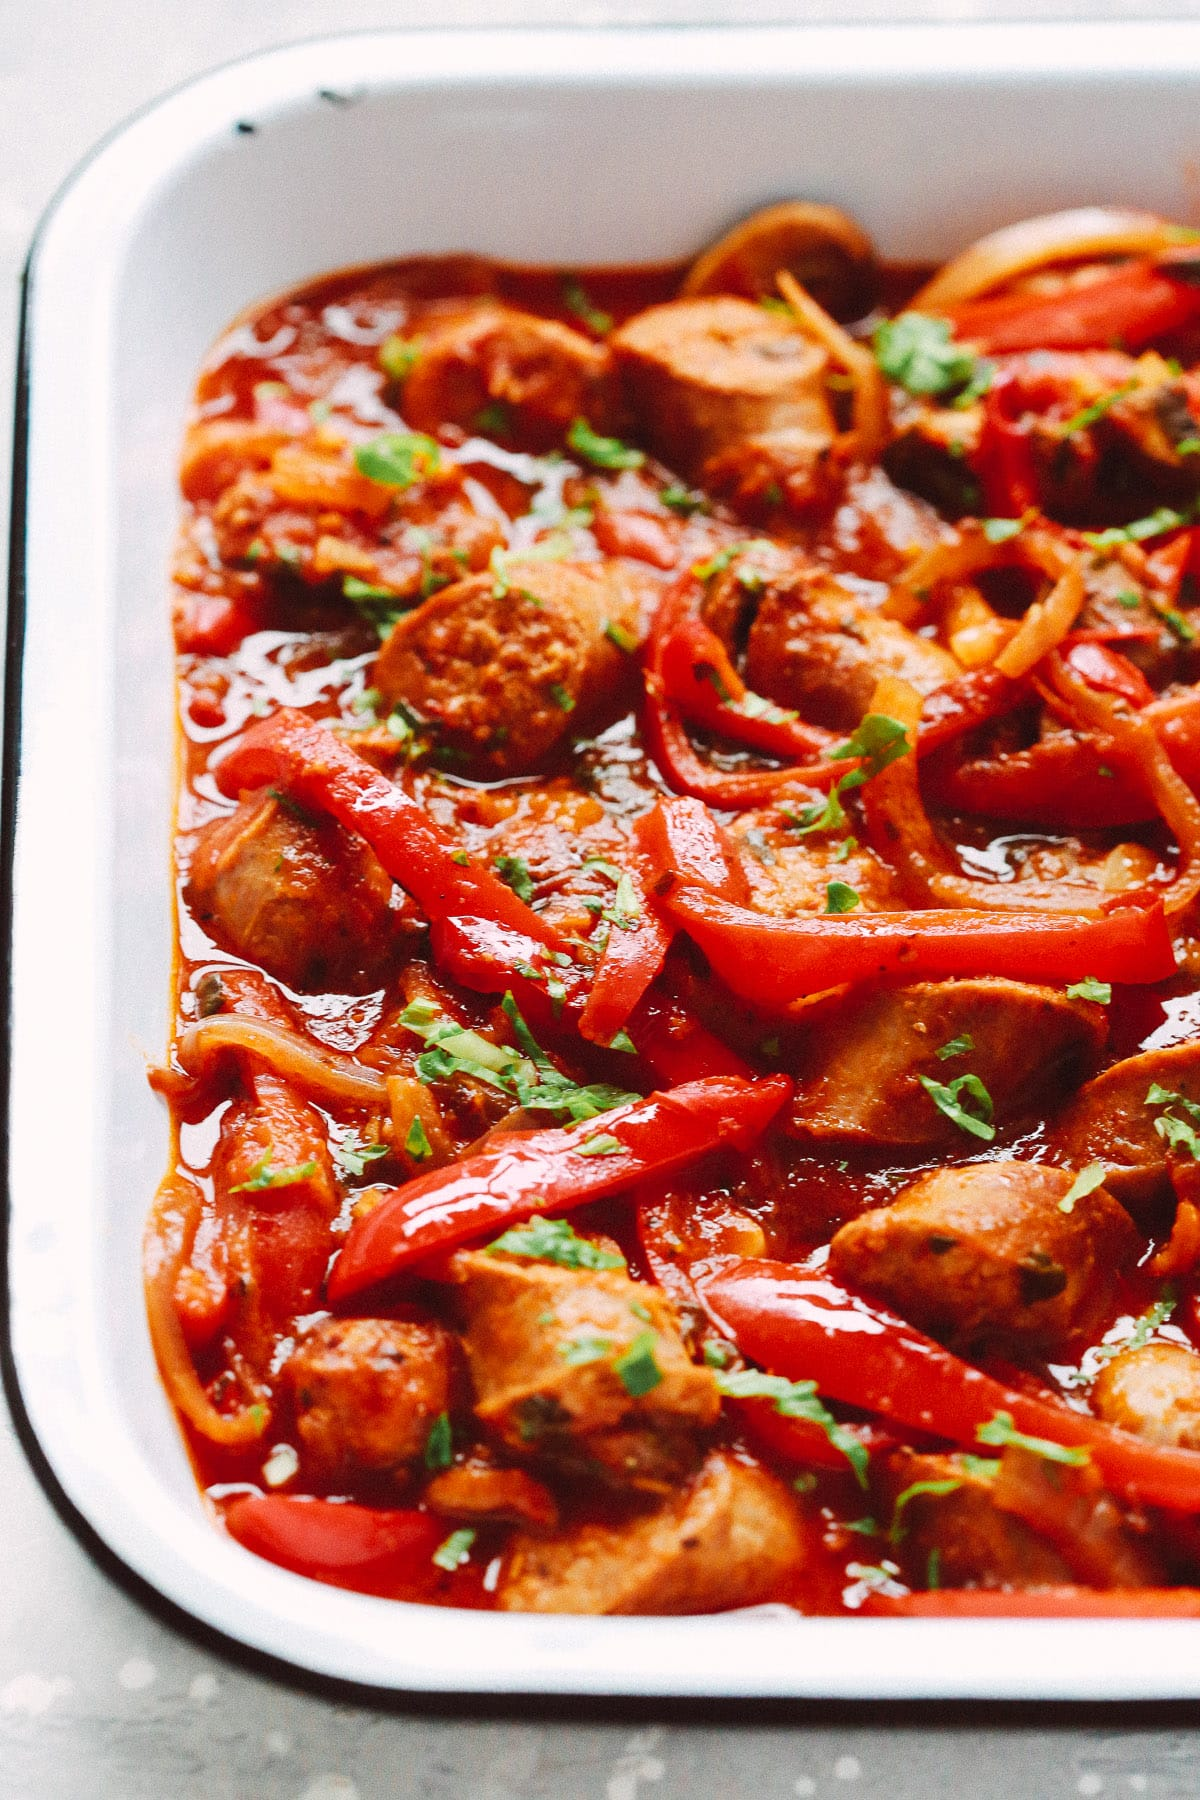 Slow Cooker Italian Sausage and Peppers